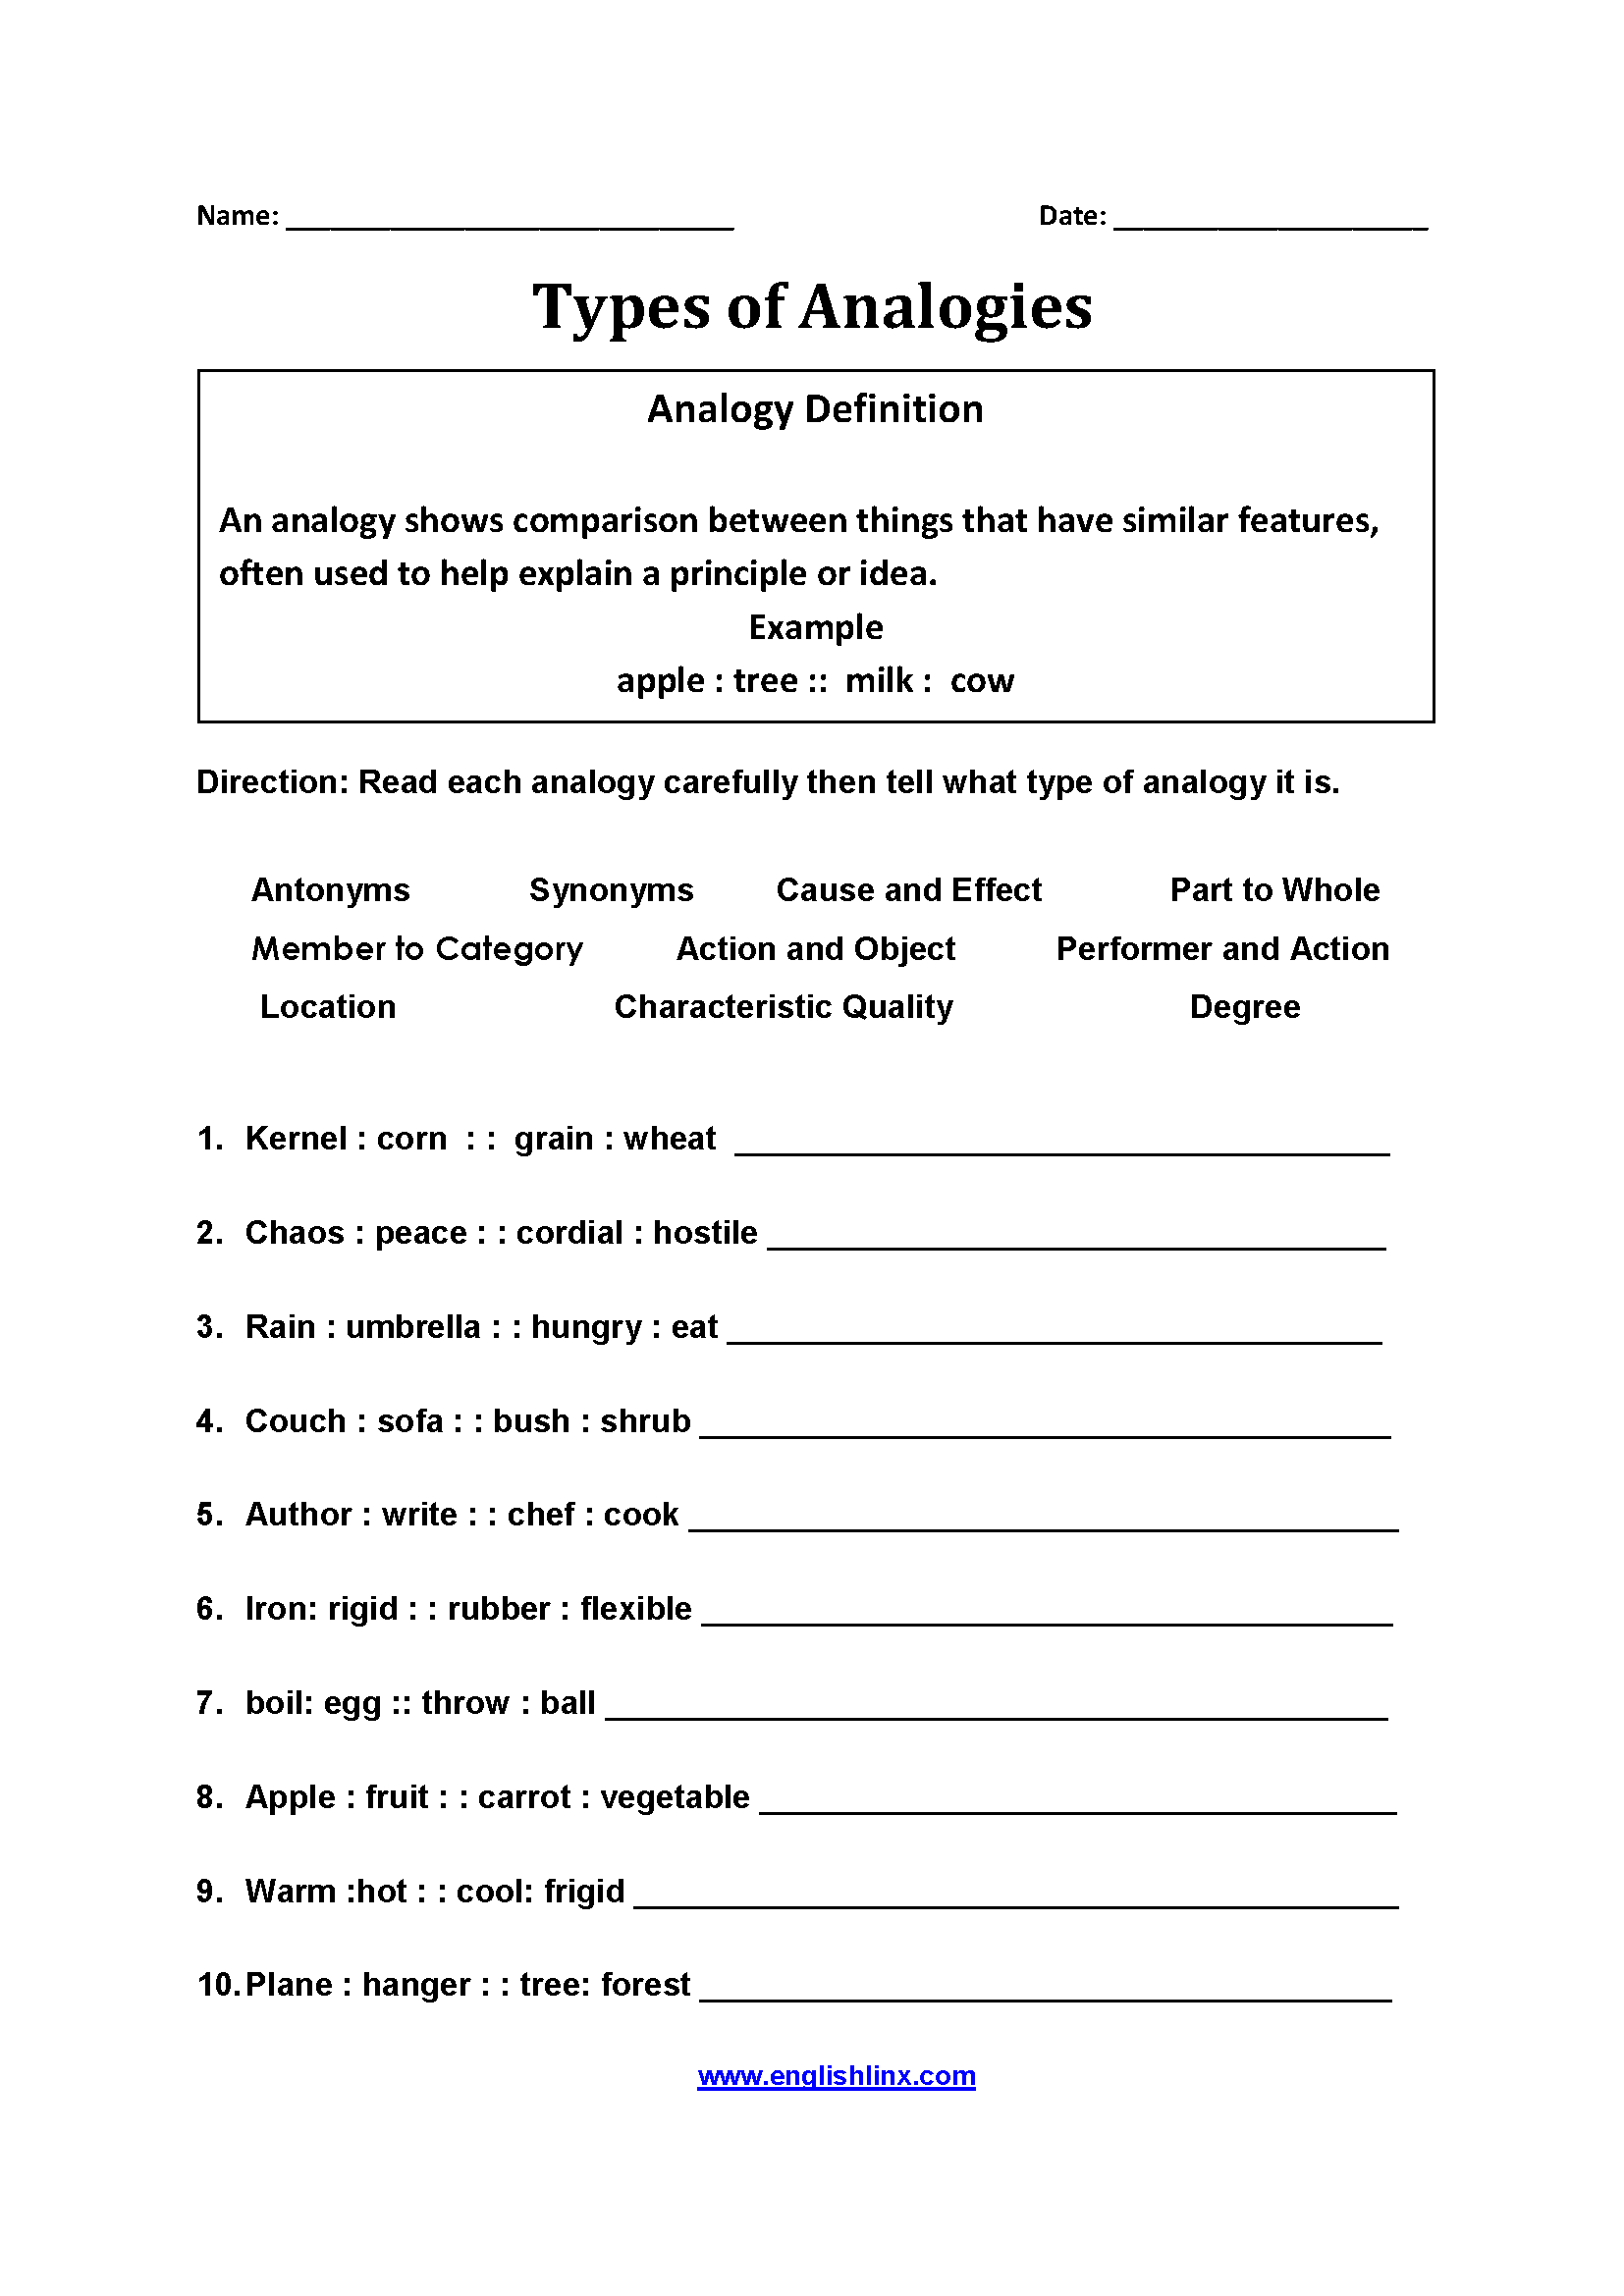 Super Teacher Worksheets Context Clues   Printable Worksheets and  Activities for Teachers [ 2339 x 1654 Pixel ]